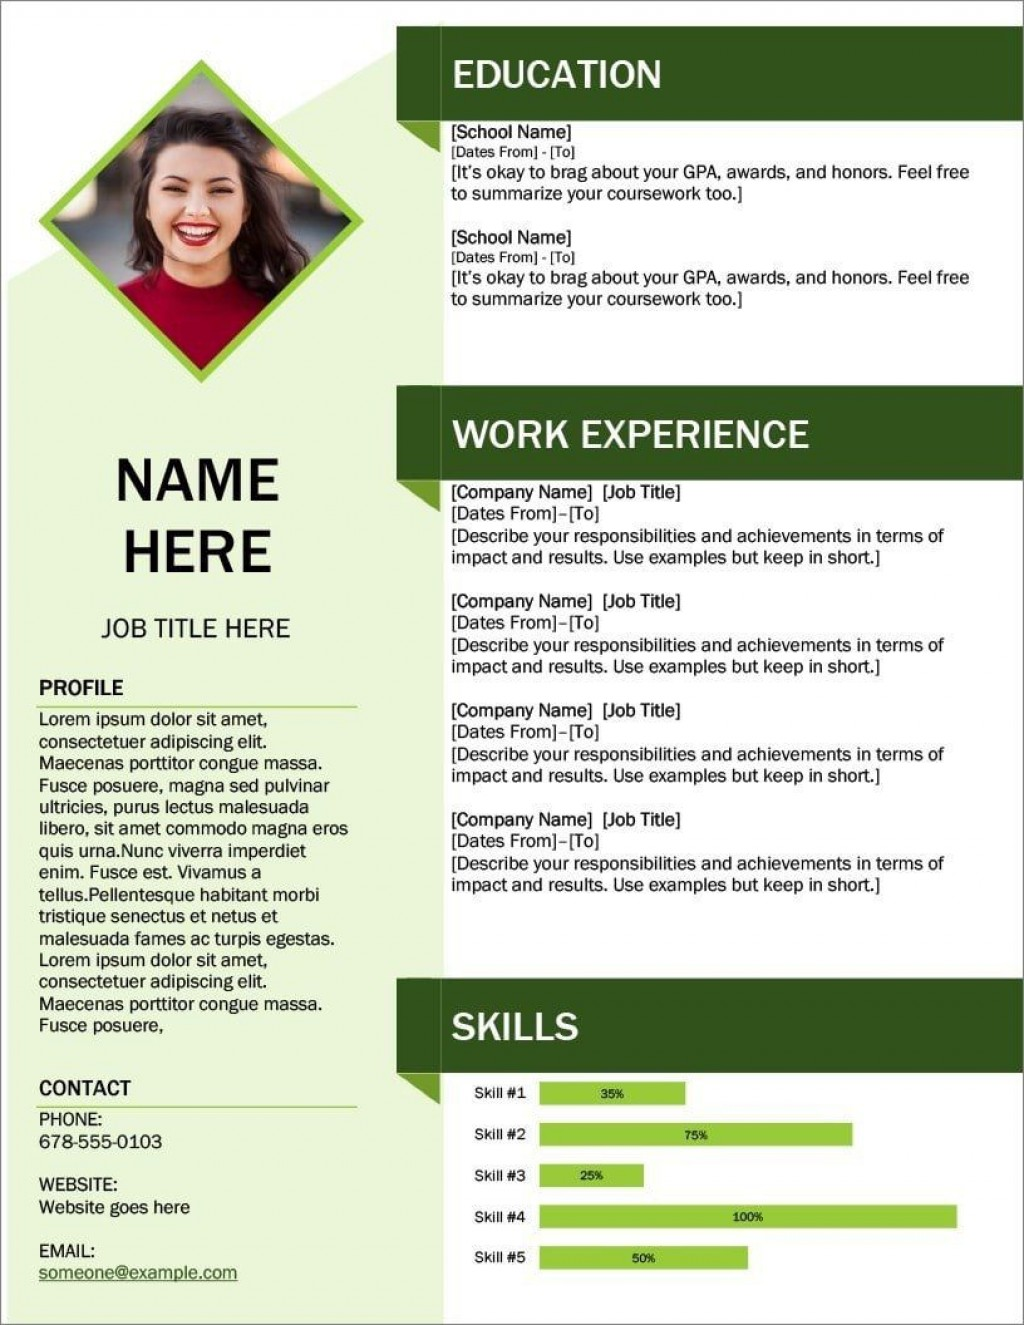 007 Shocking Resume Template M Word Free Idea  Modern Microsoft Download 2010 Cv With PictureLarge